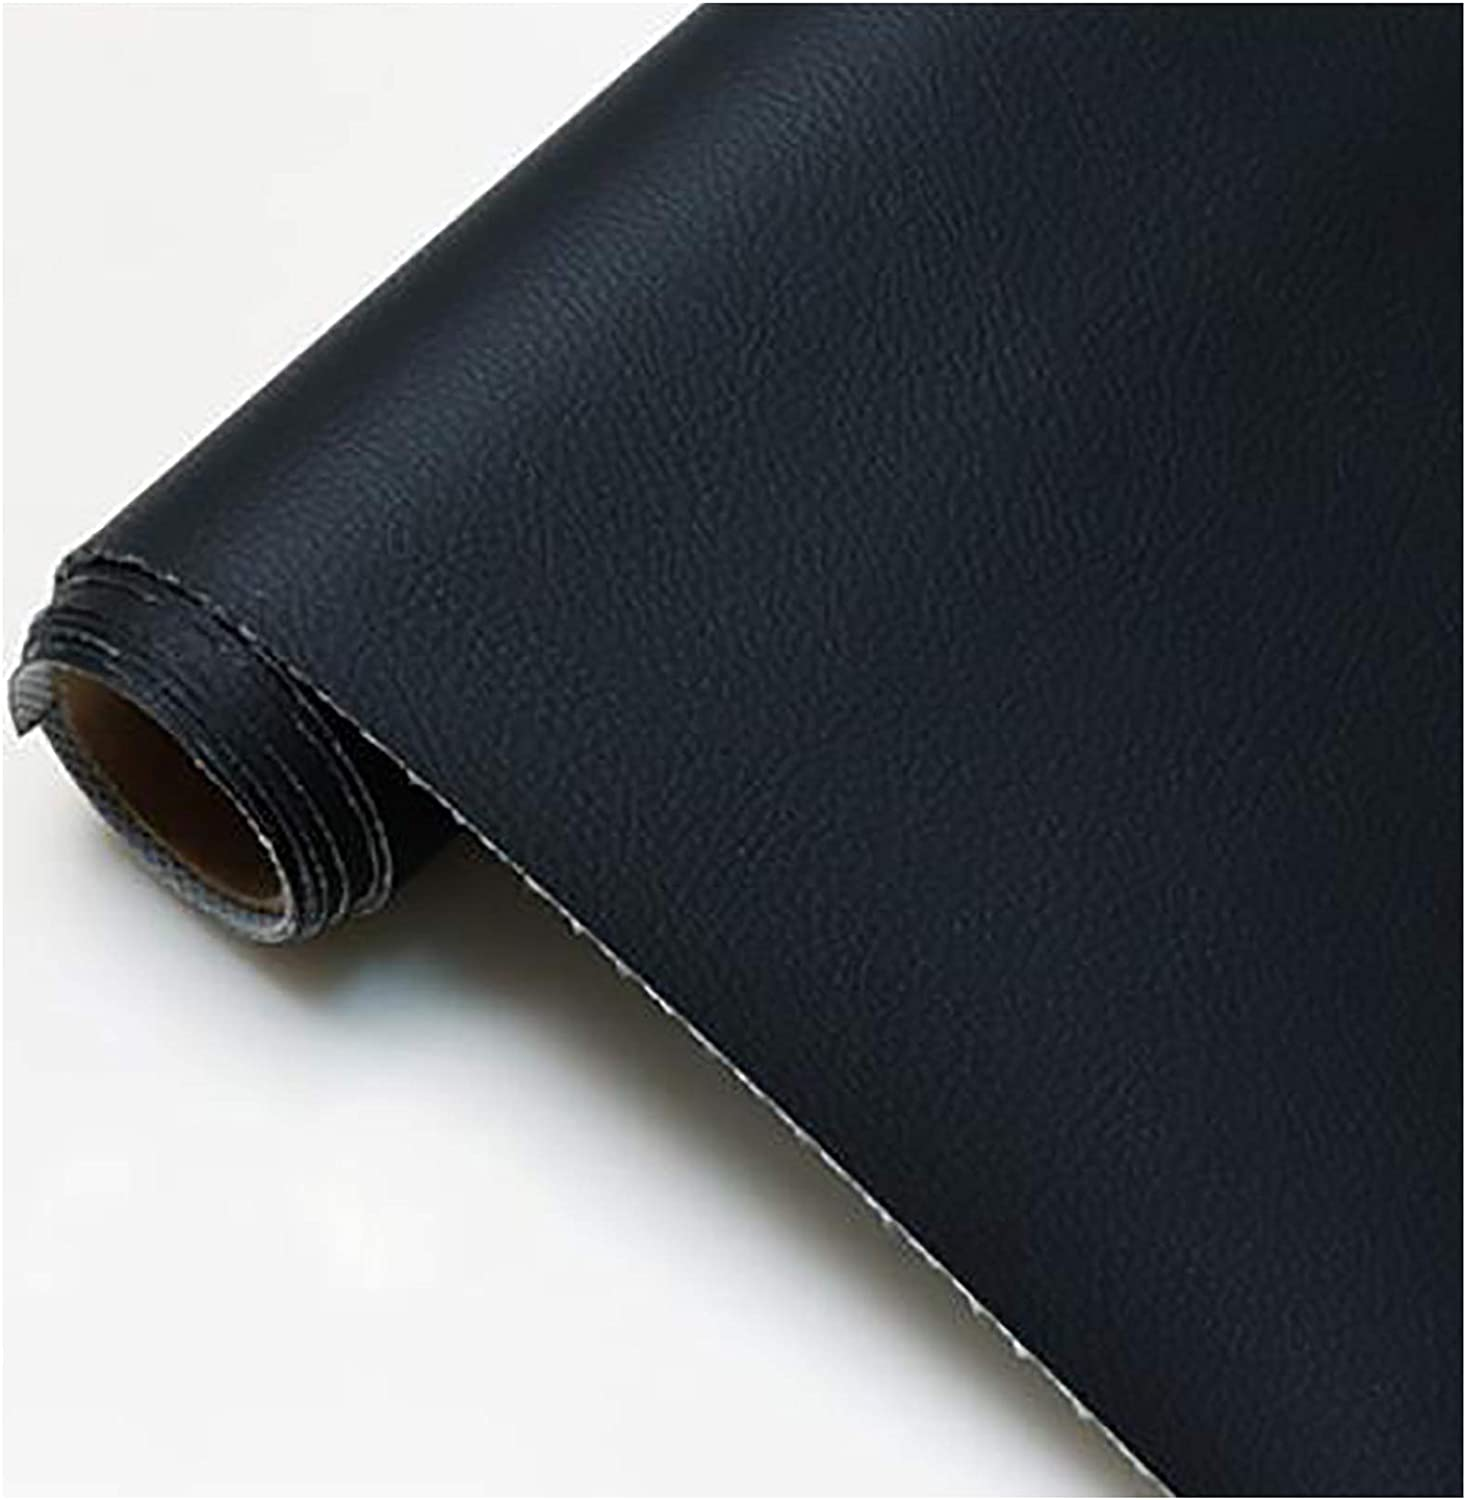 GERYUXA Faux Leather Special price All stores are sold Sheets Fabric with Sheet Bows